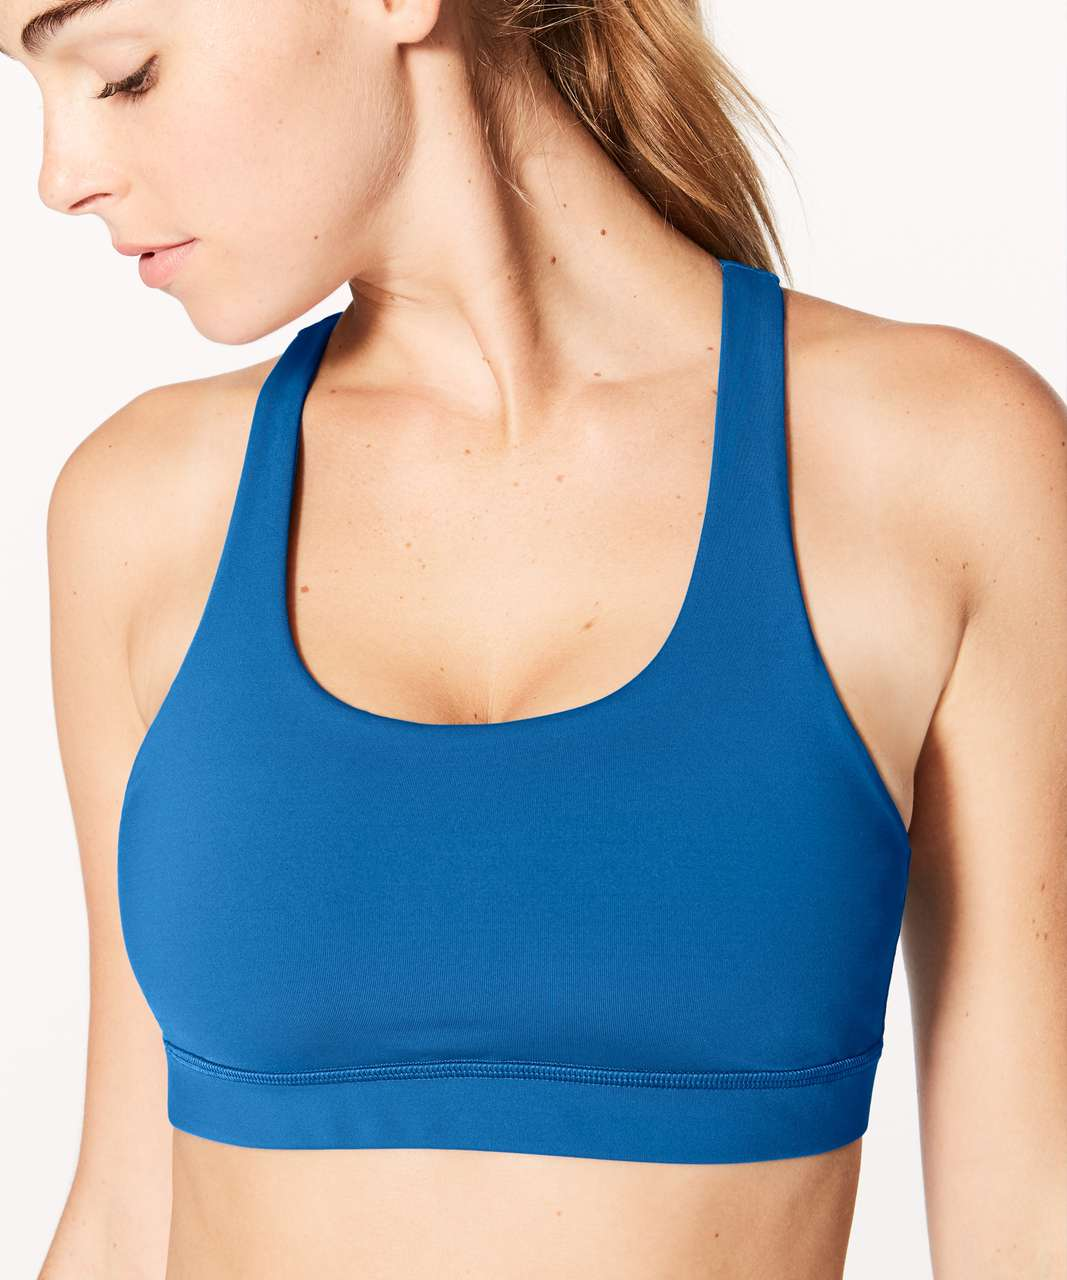 Lululemon Invigorate Bra - Whirlpool